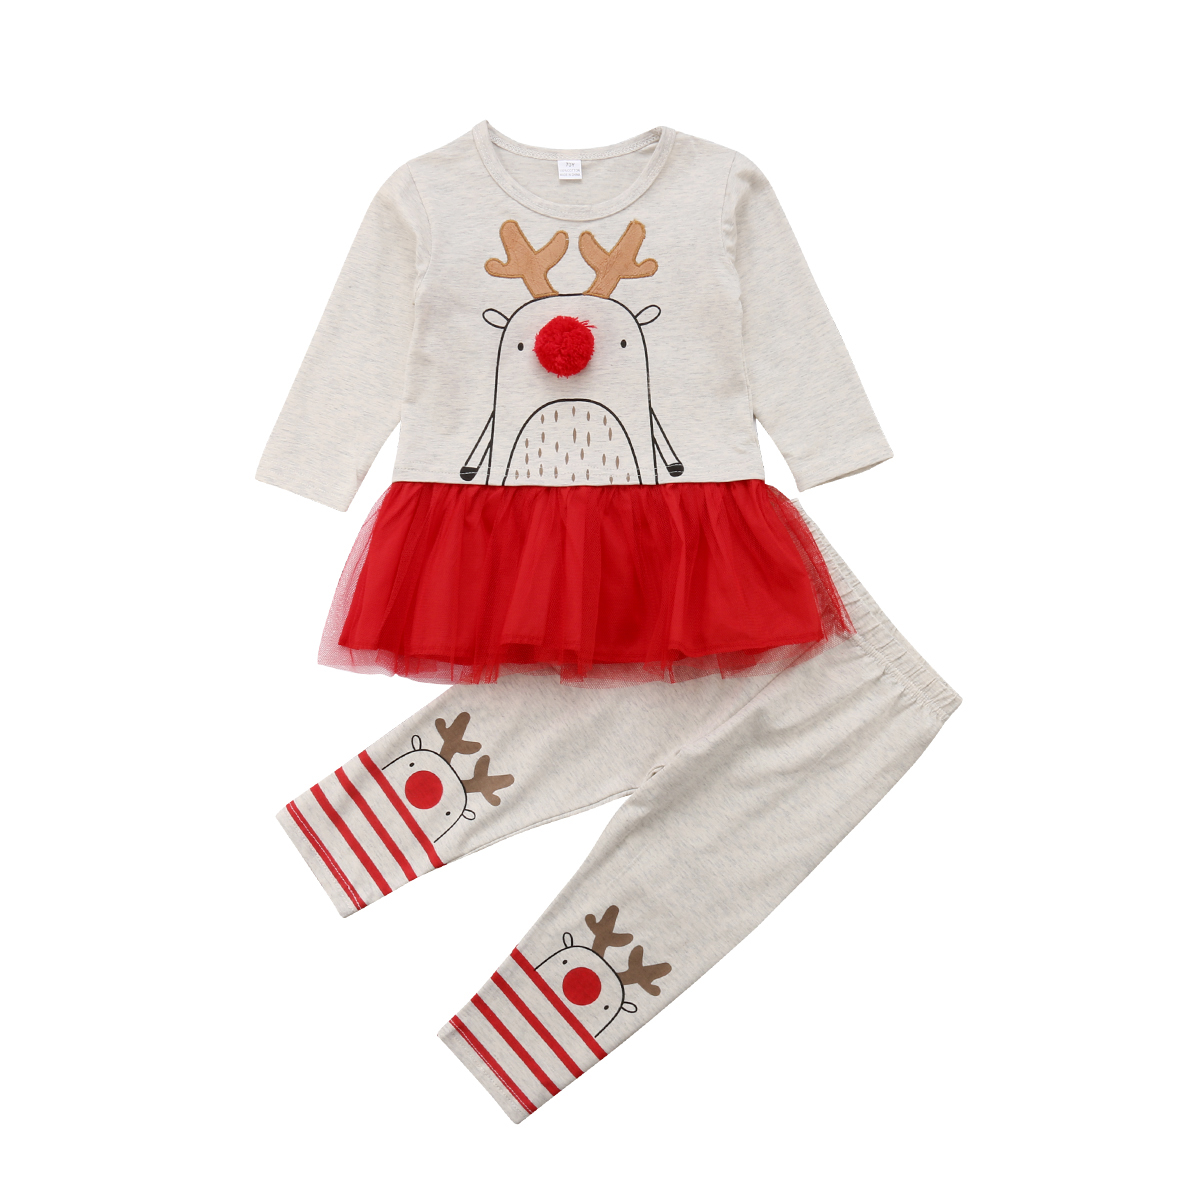 Xmas Christmas Toddler Kids Child Girls Baby Clothes Dress Tops+Pant Outfit Set